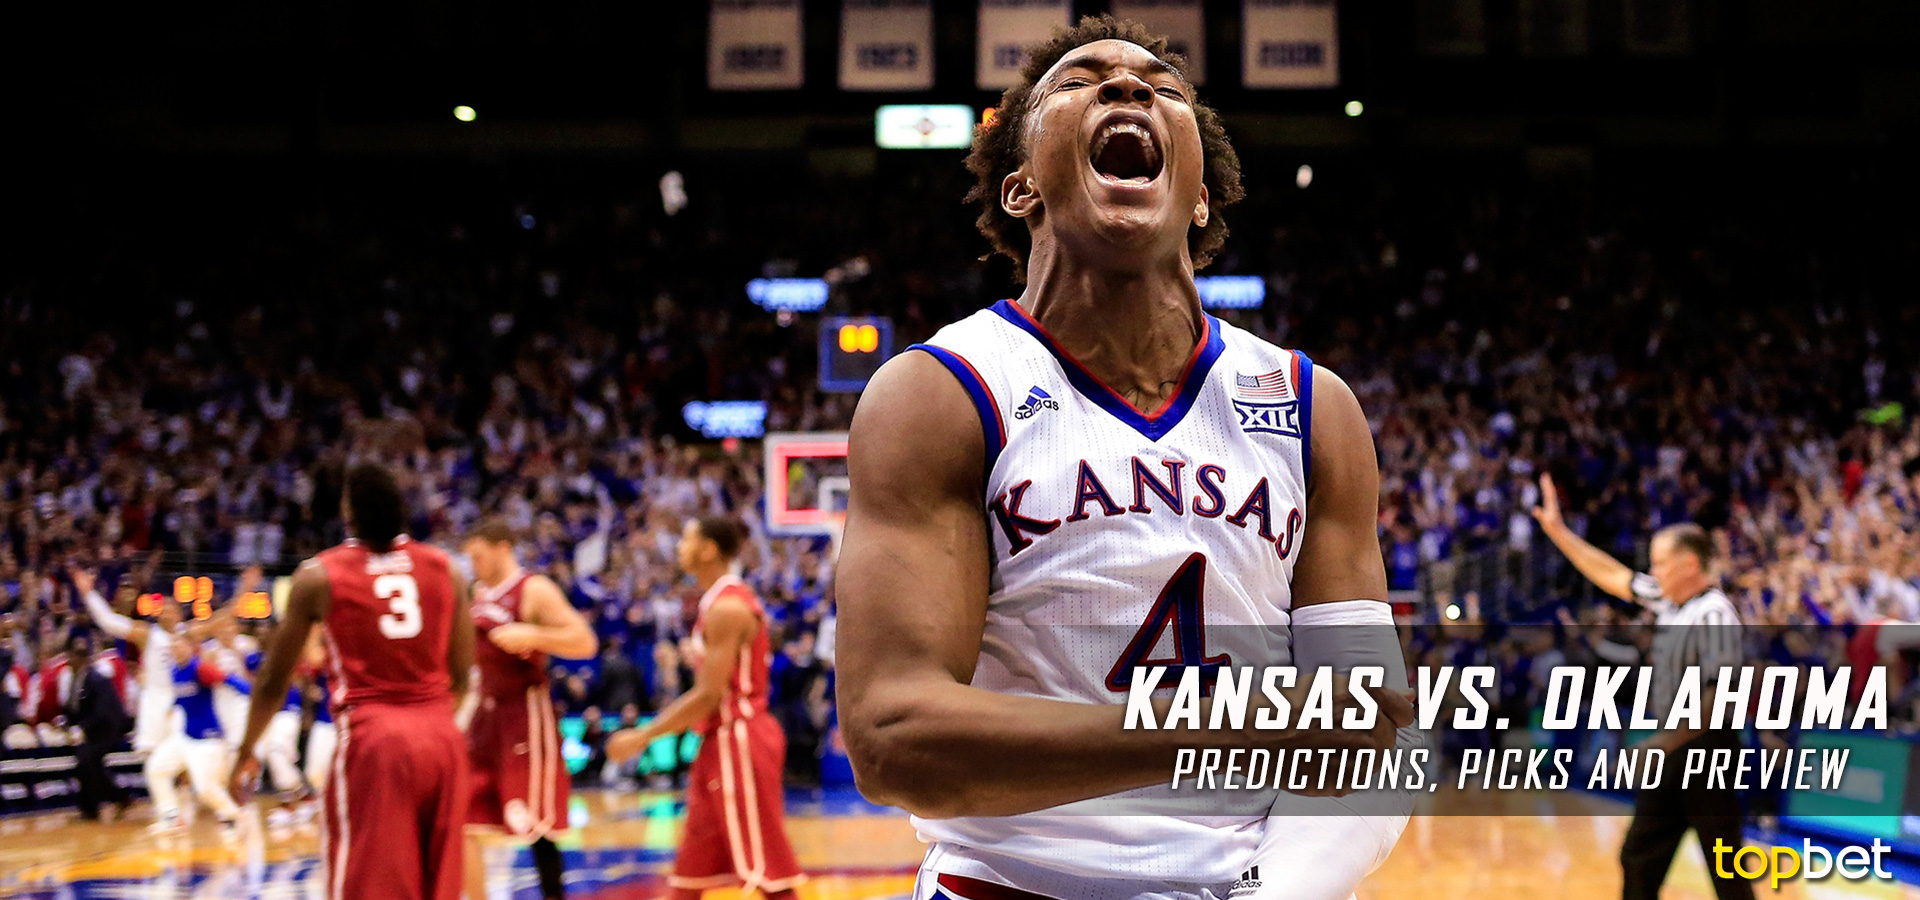 Kansas vs Oklahoma Basketball Predictions, Picks and Preview